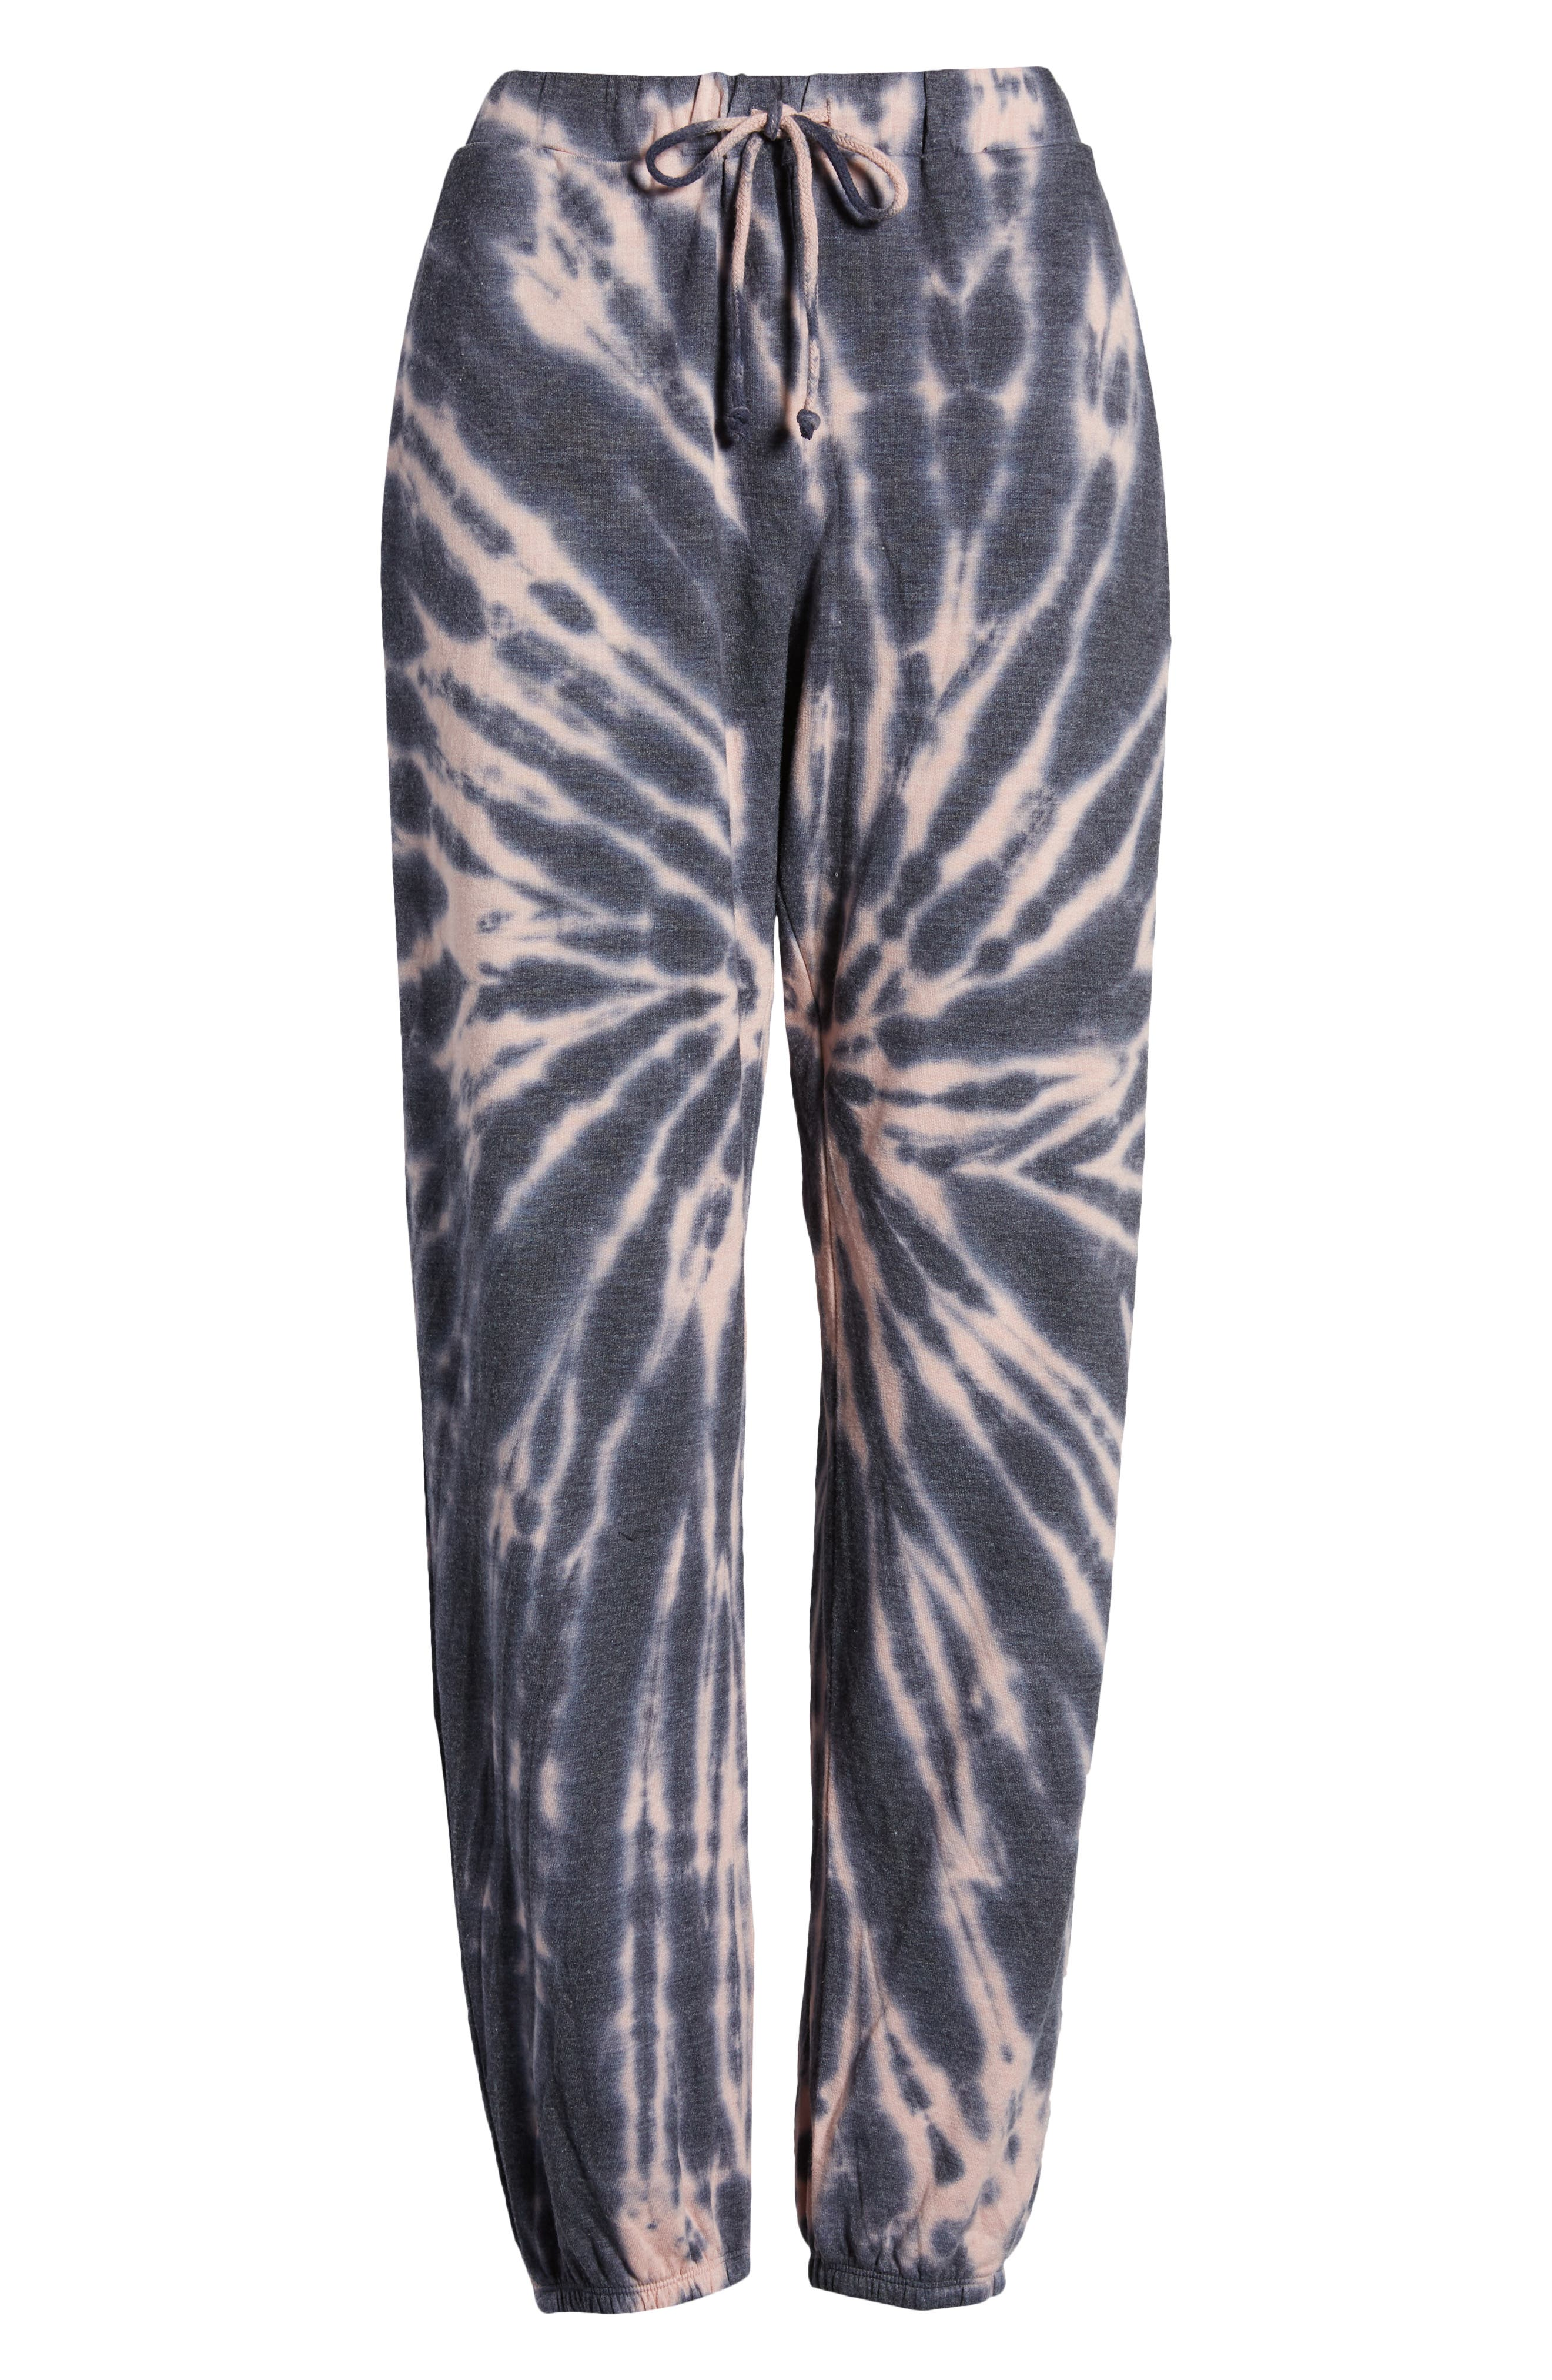 Women's Treasure & Bond Tie Dye Sweatpants